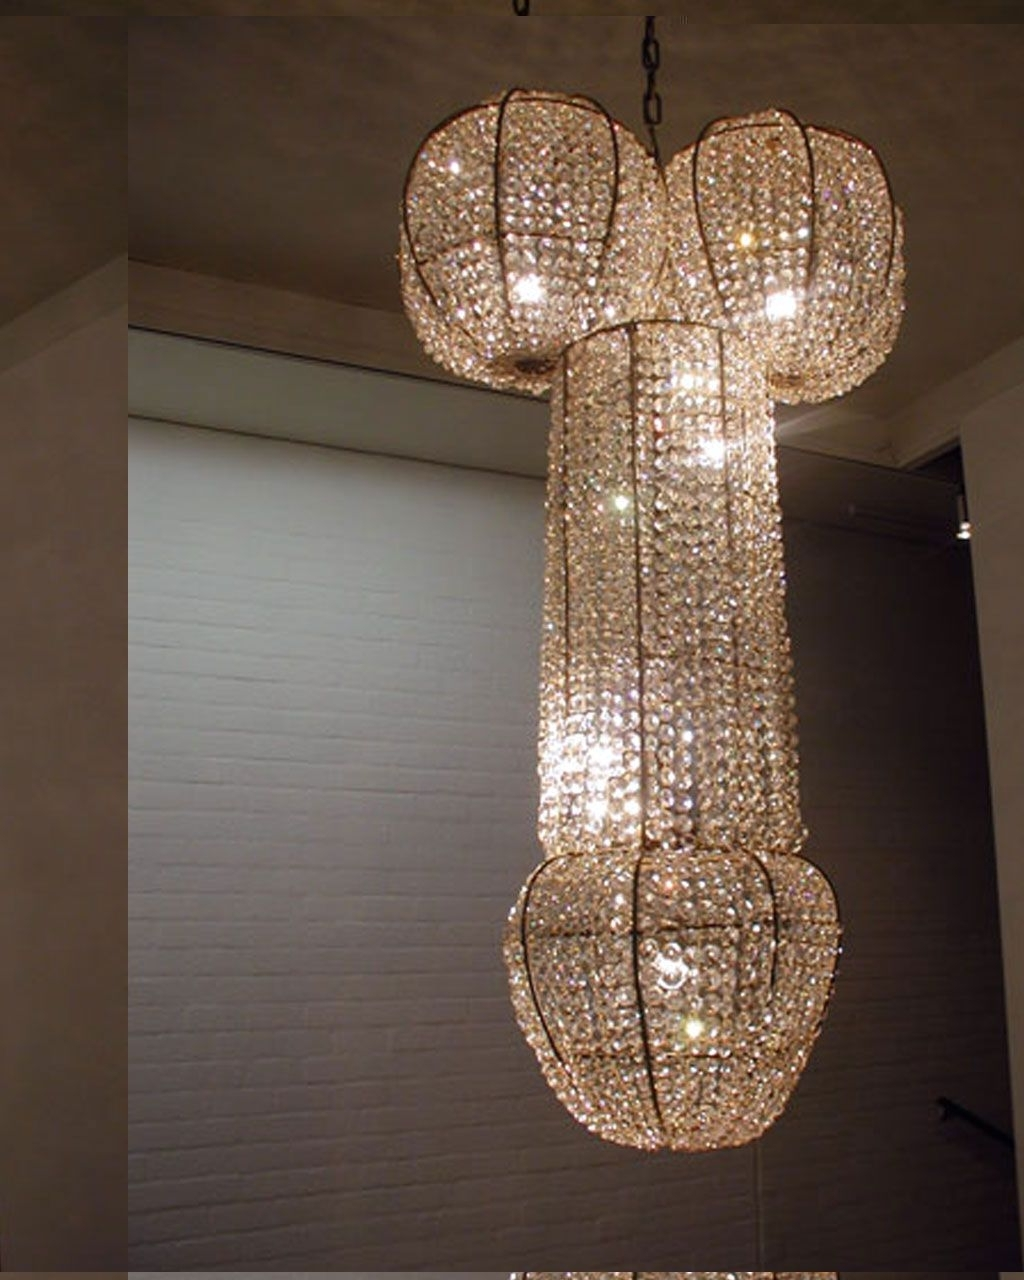 Widely Used Modern Creative Chandeliers Design – Looks More Like A Penis (View 20 of 20)